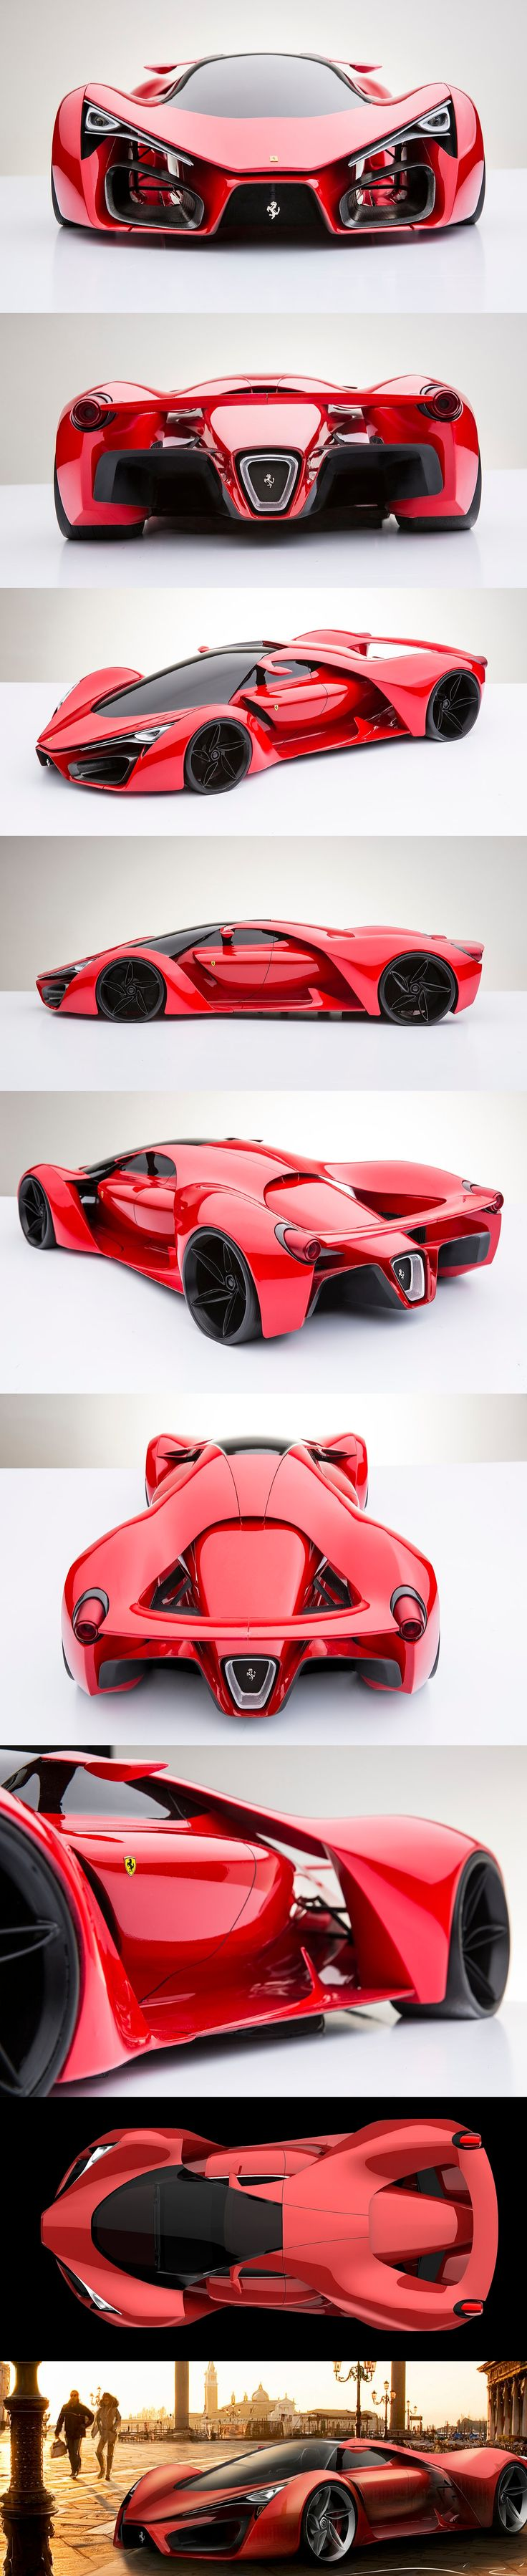 Ferrari F80 Concept love this car. Max speed 310 2.2 seconds 0-62, 15 seconds 0-186 and 1 minute 20 seconds 0-310 my God I love this car